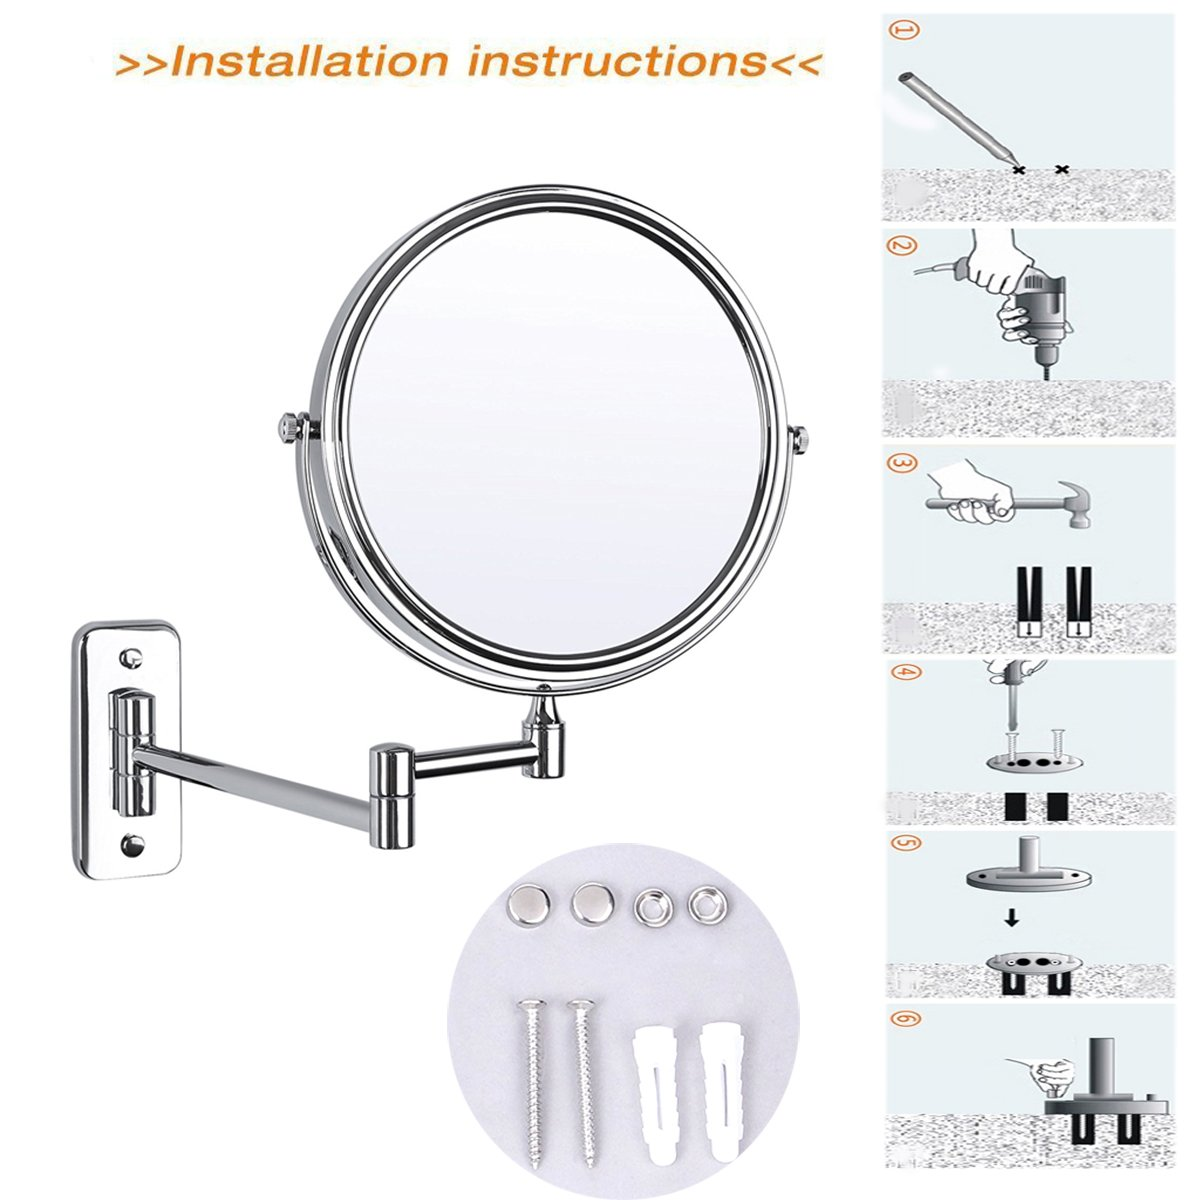 IBeaty Bathroom Mirror 8 inch Wall Mount Makeup Mirror Double-Sided Face Mirror, Swivel Vanity Mirror 1x and 7x Magnification Polished Chrome Finished by IBeaty (Image #8)